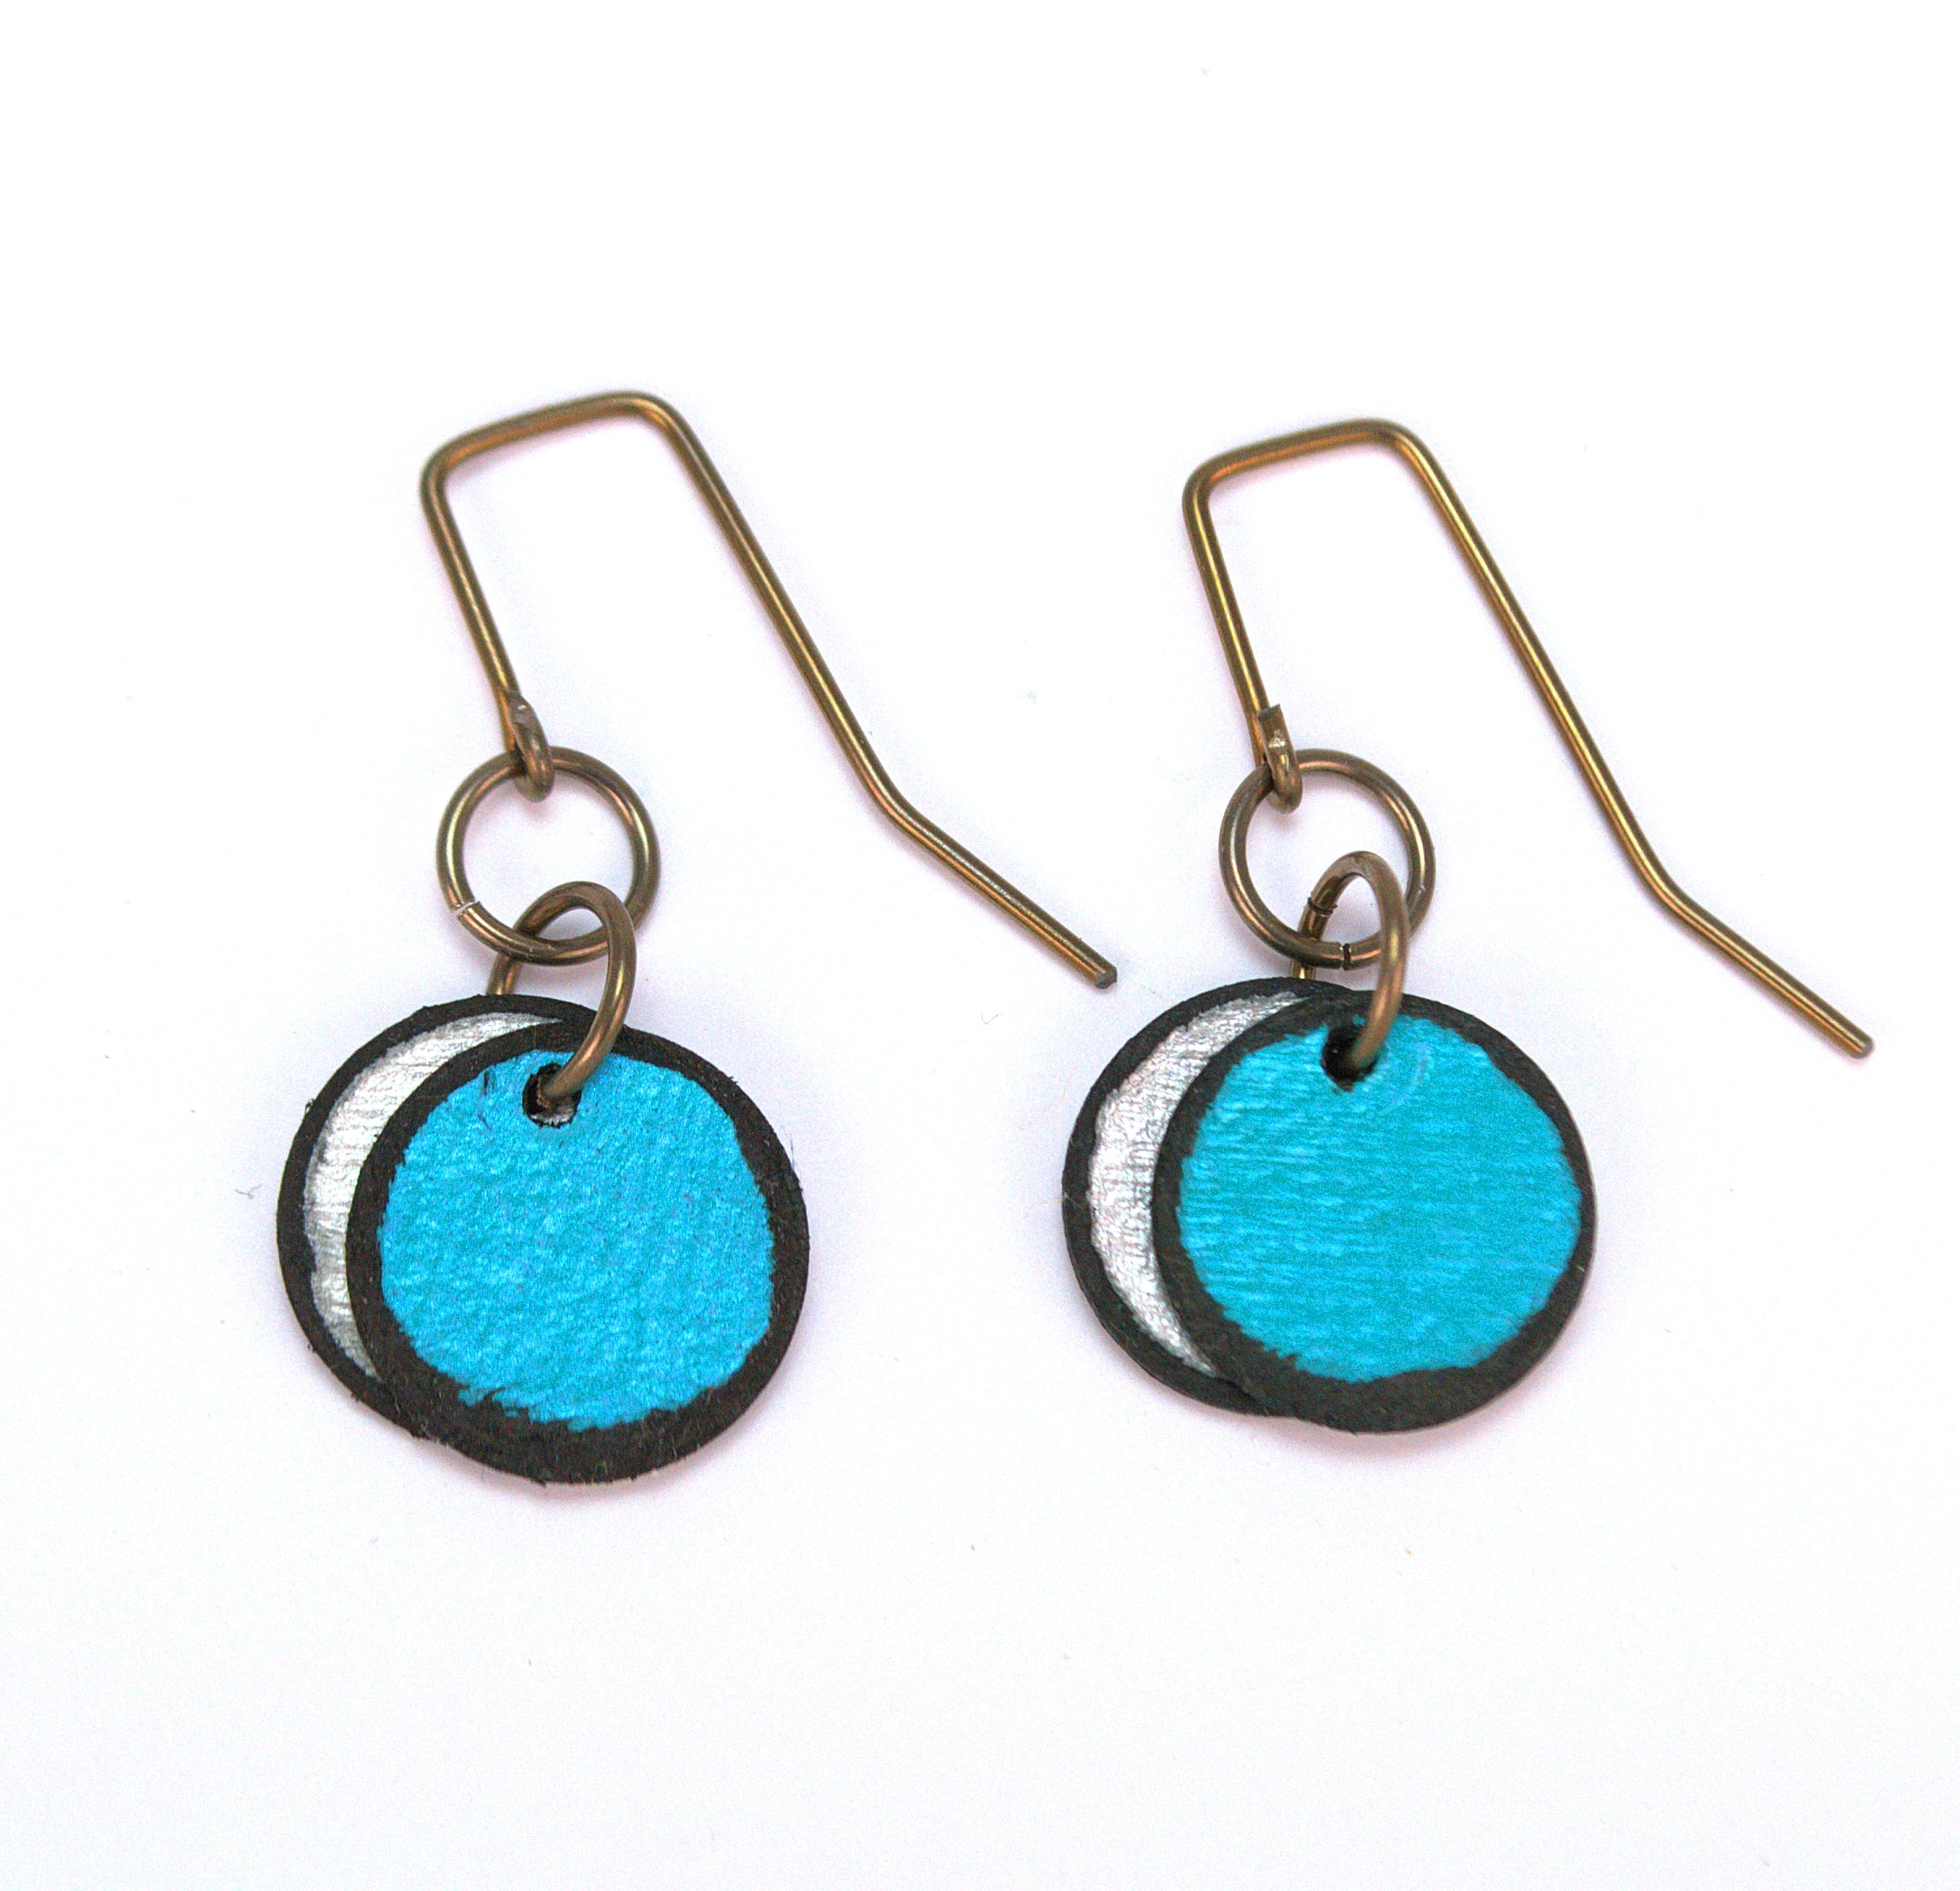 Turquoise double circle earrings made from rawhide, super lightweight